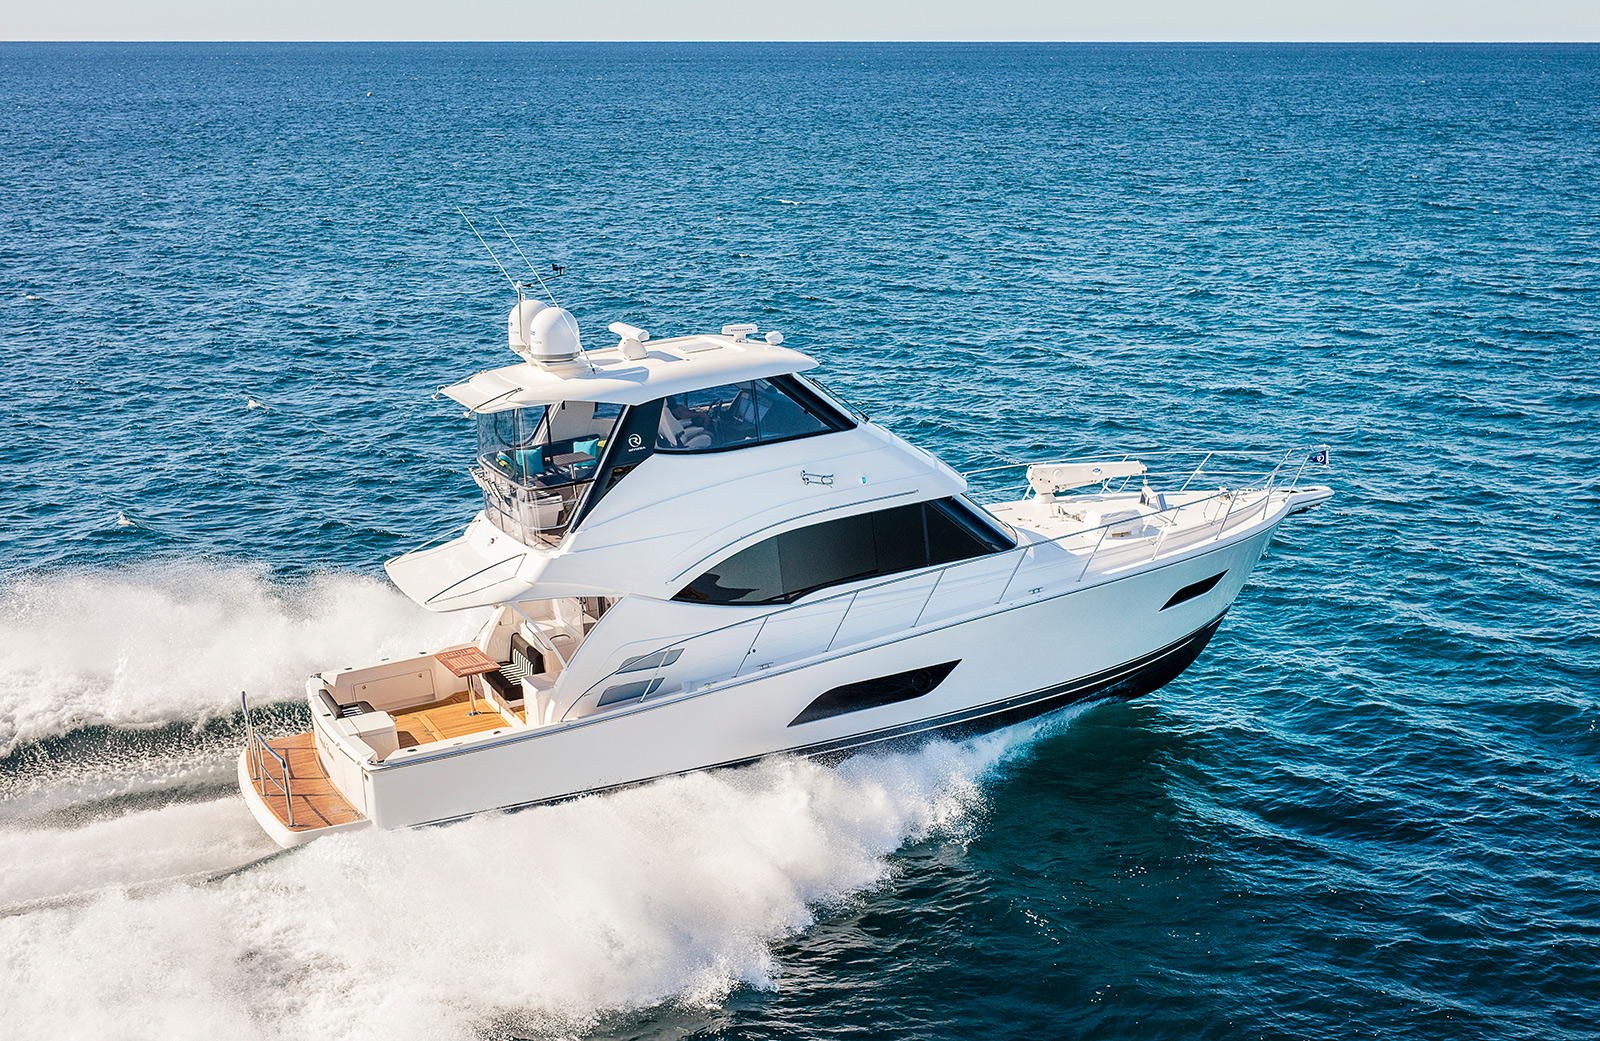 New Riviera Yachts for Sale - Enclosed Flybridge series